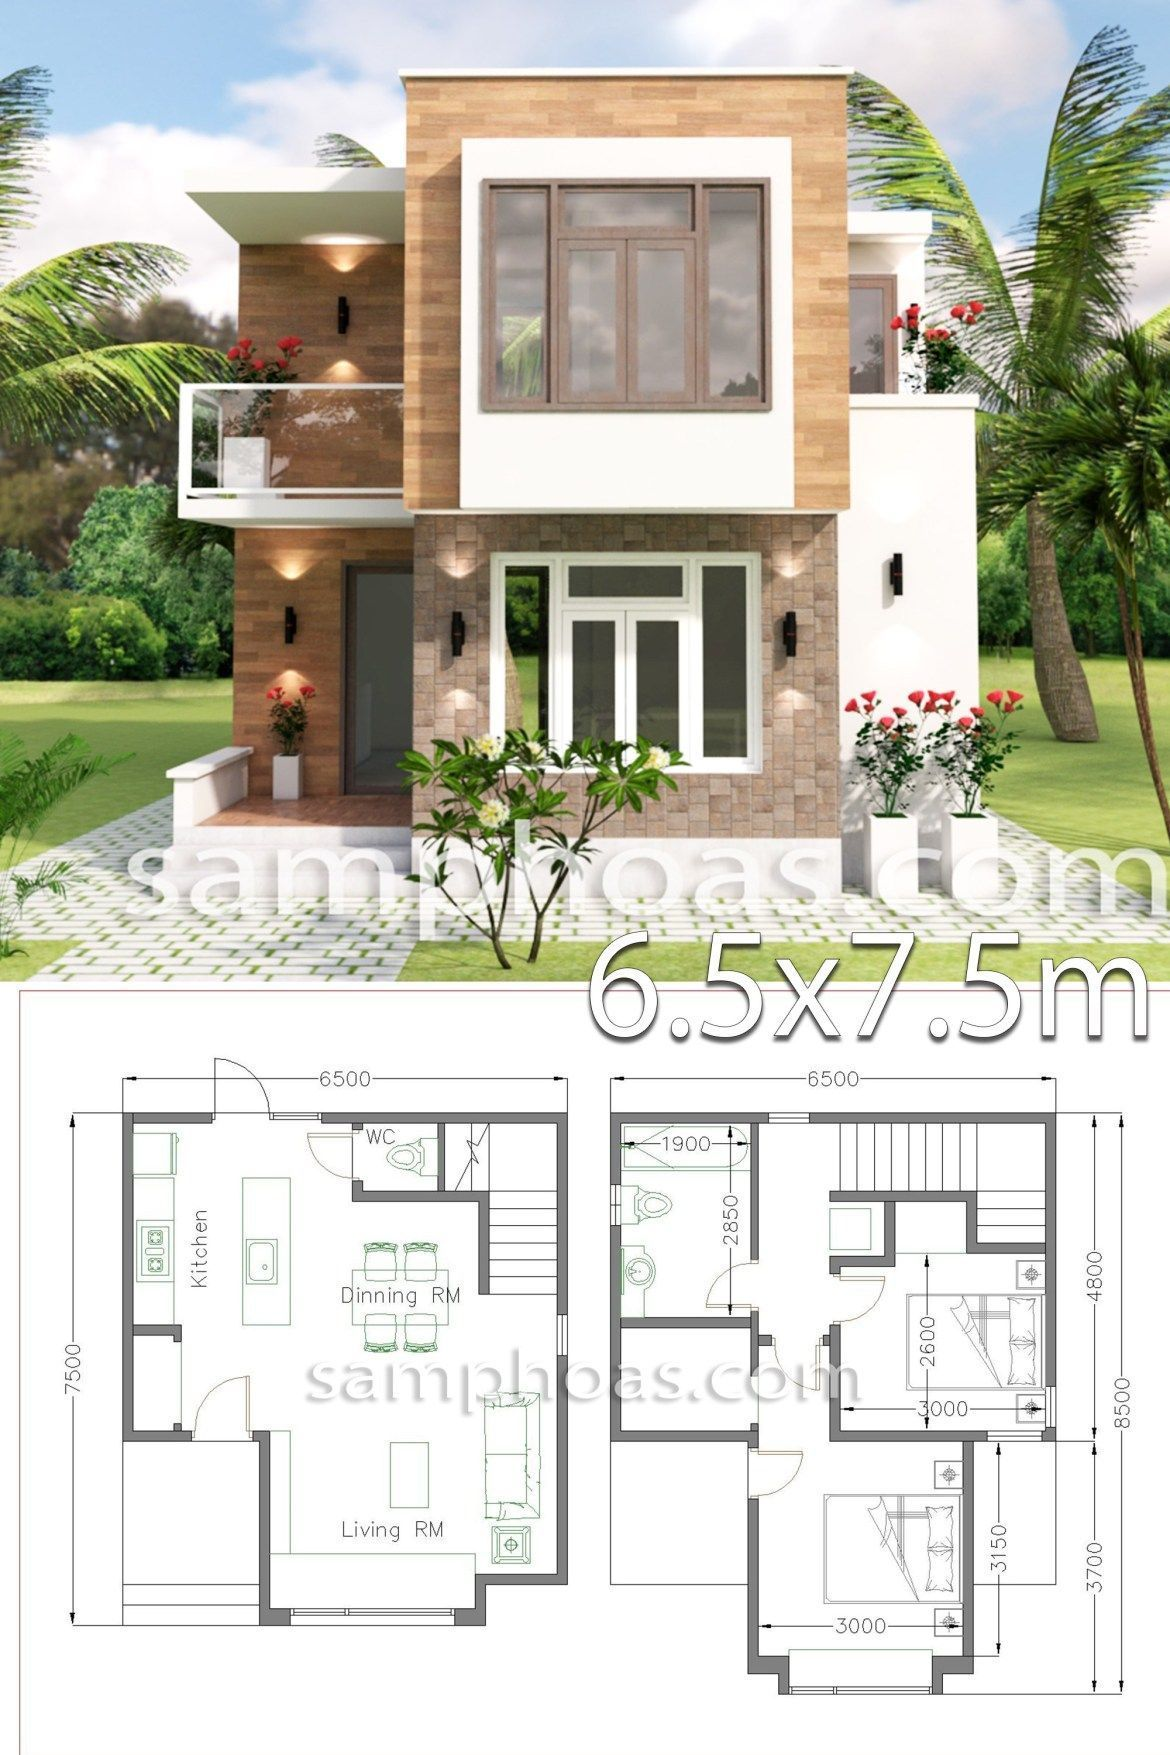 Small House Design with Full Plan 6.5x7.5m 2 Bedrooms - SamPhoas Plan - Small House Design with Full Plan 6.5×7.5m 2 Bedrooms – SamPhoas Plansearch - #65x75m #bedrooms #design #full #house #LivingRoomDesigns #ModernHouseDesign #ModernInteriorDesign #plan #samphoas #small